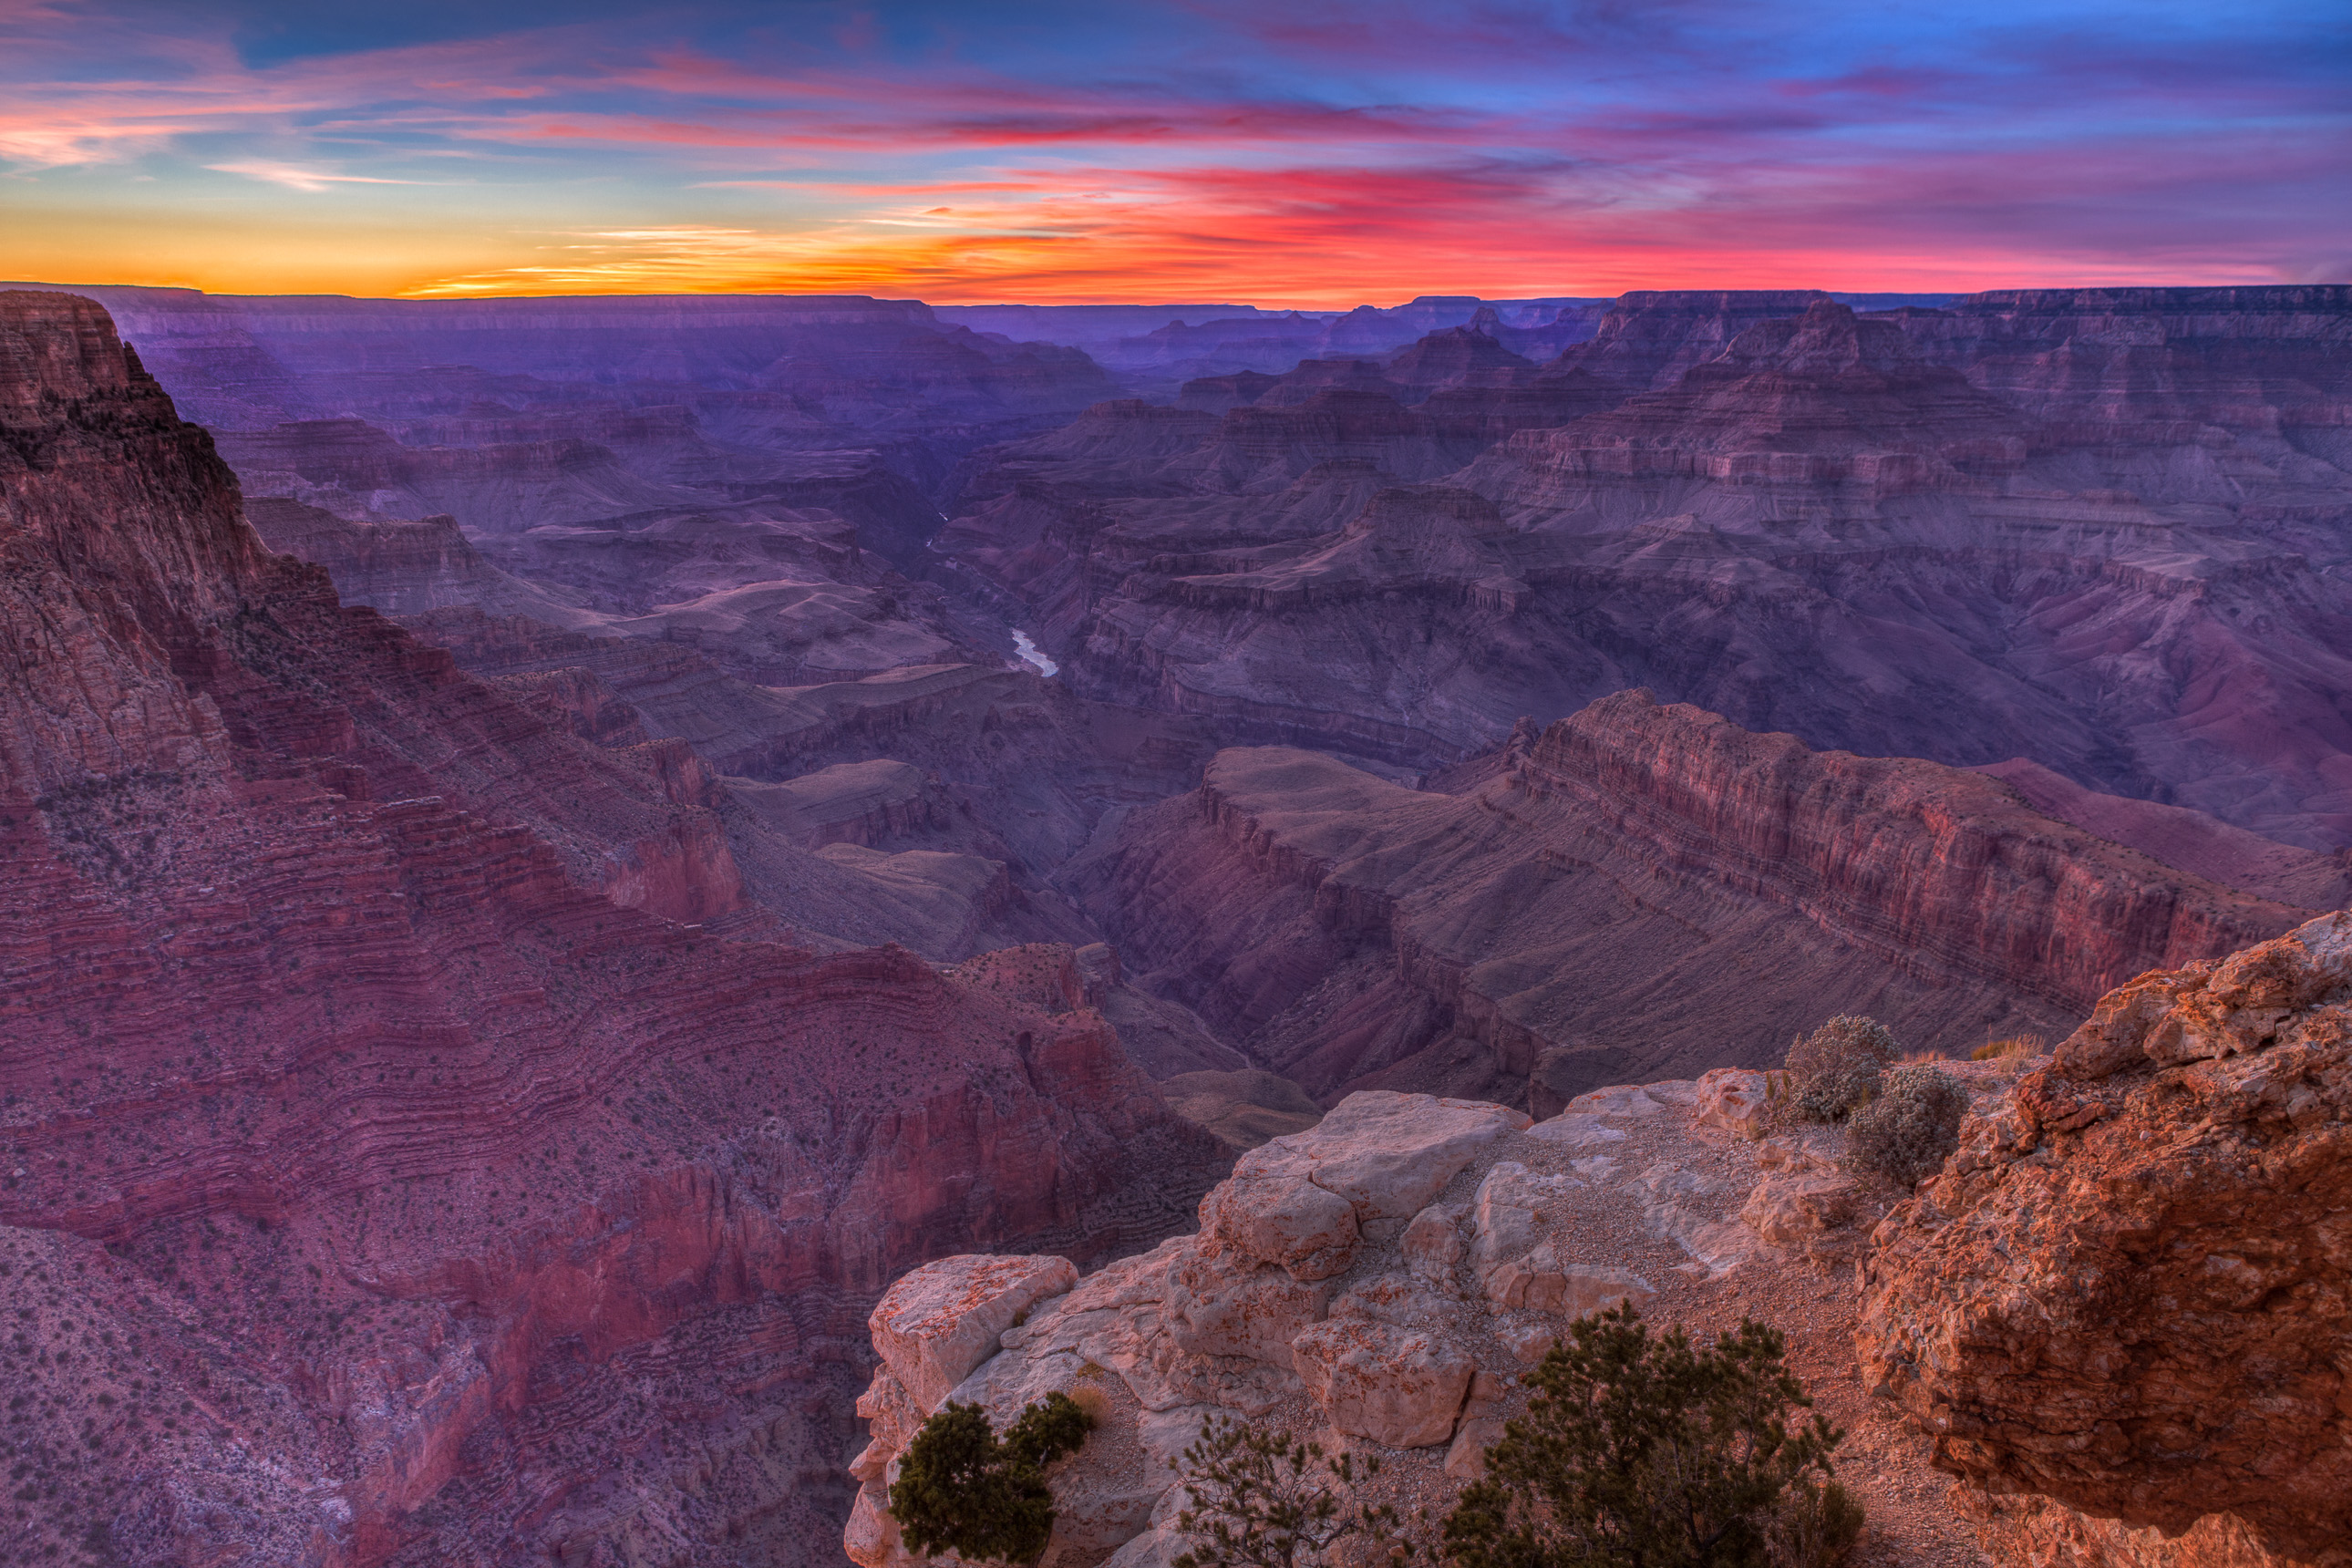 Sunset from Lipan Point at Grand Canyon National Park